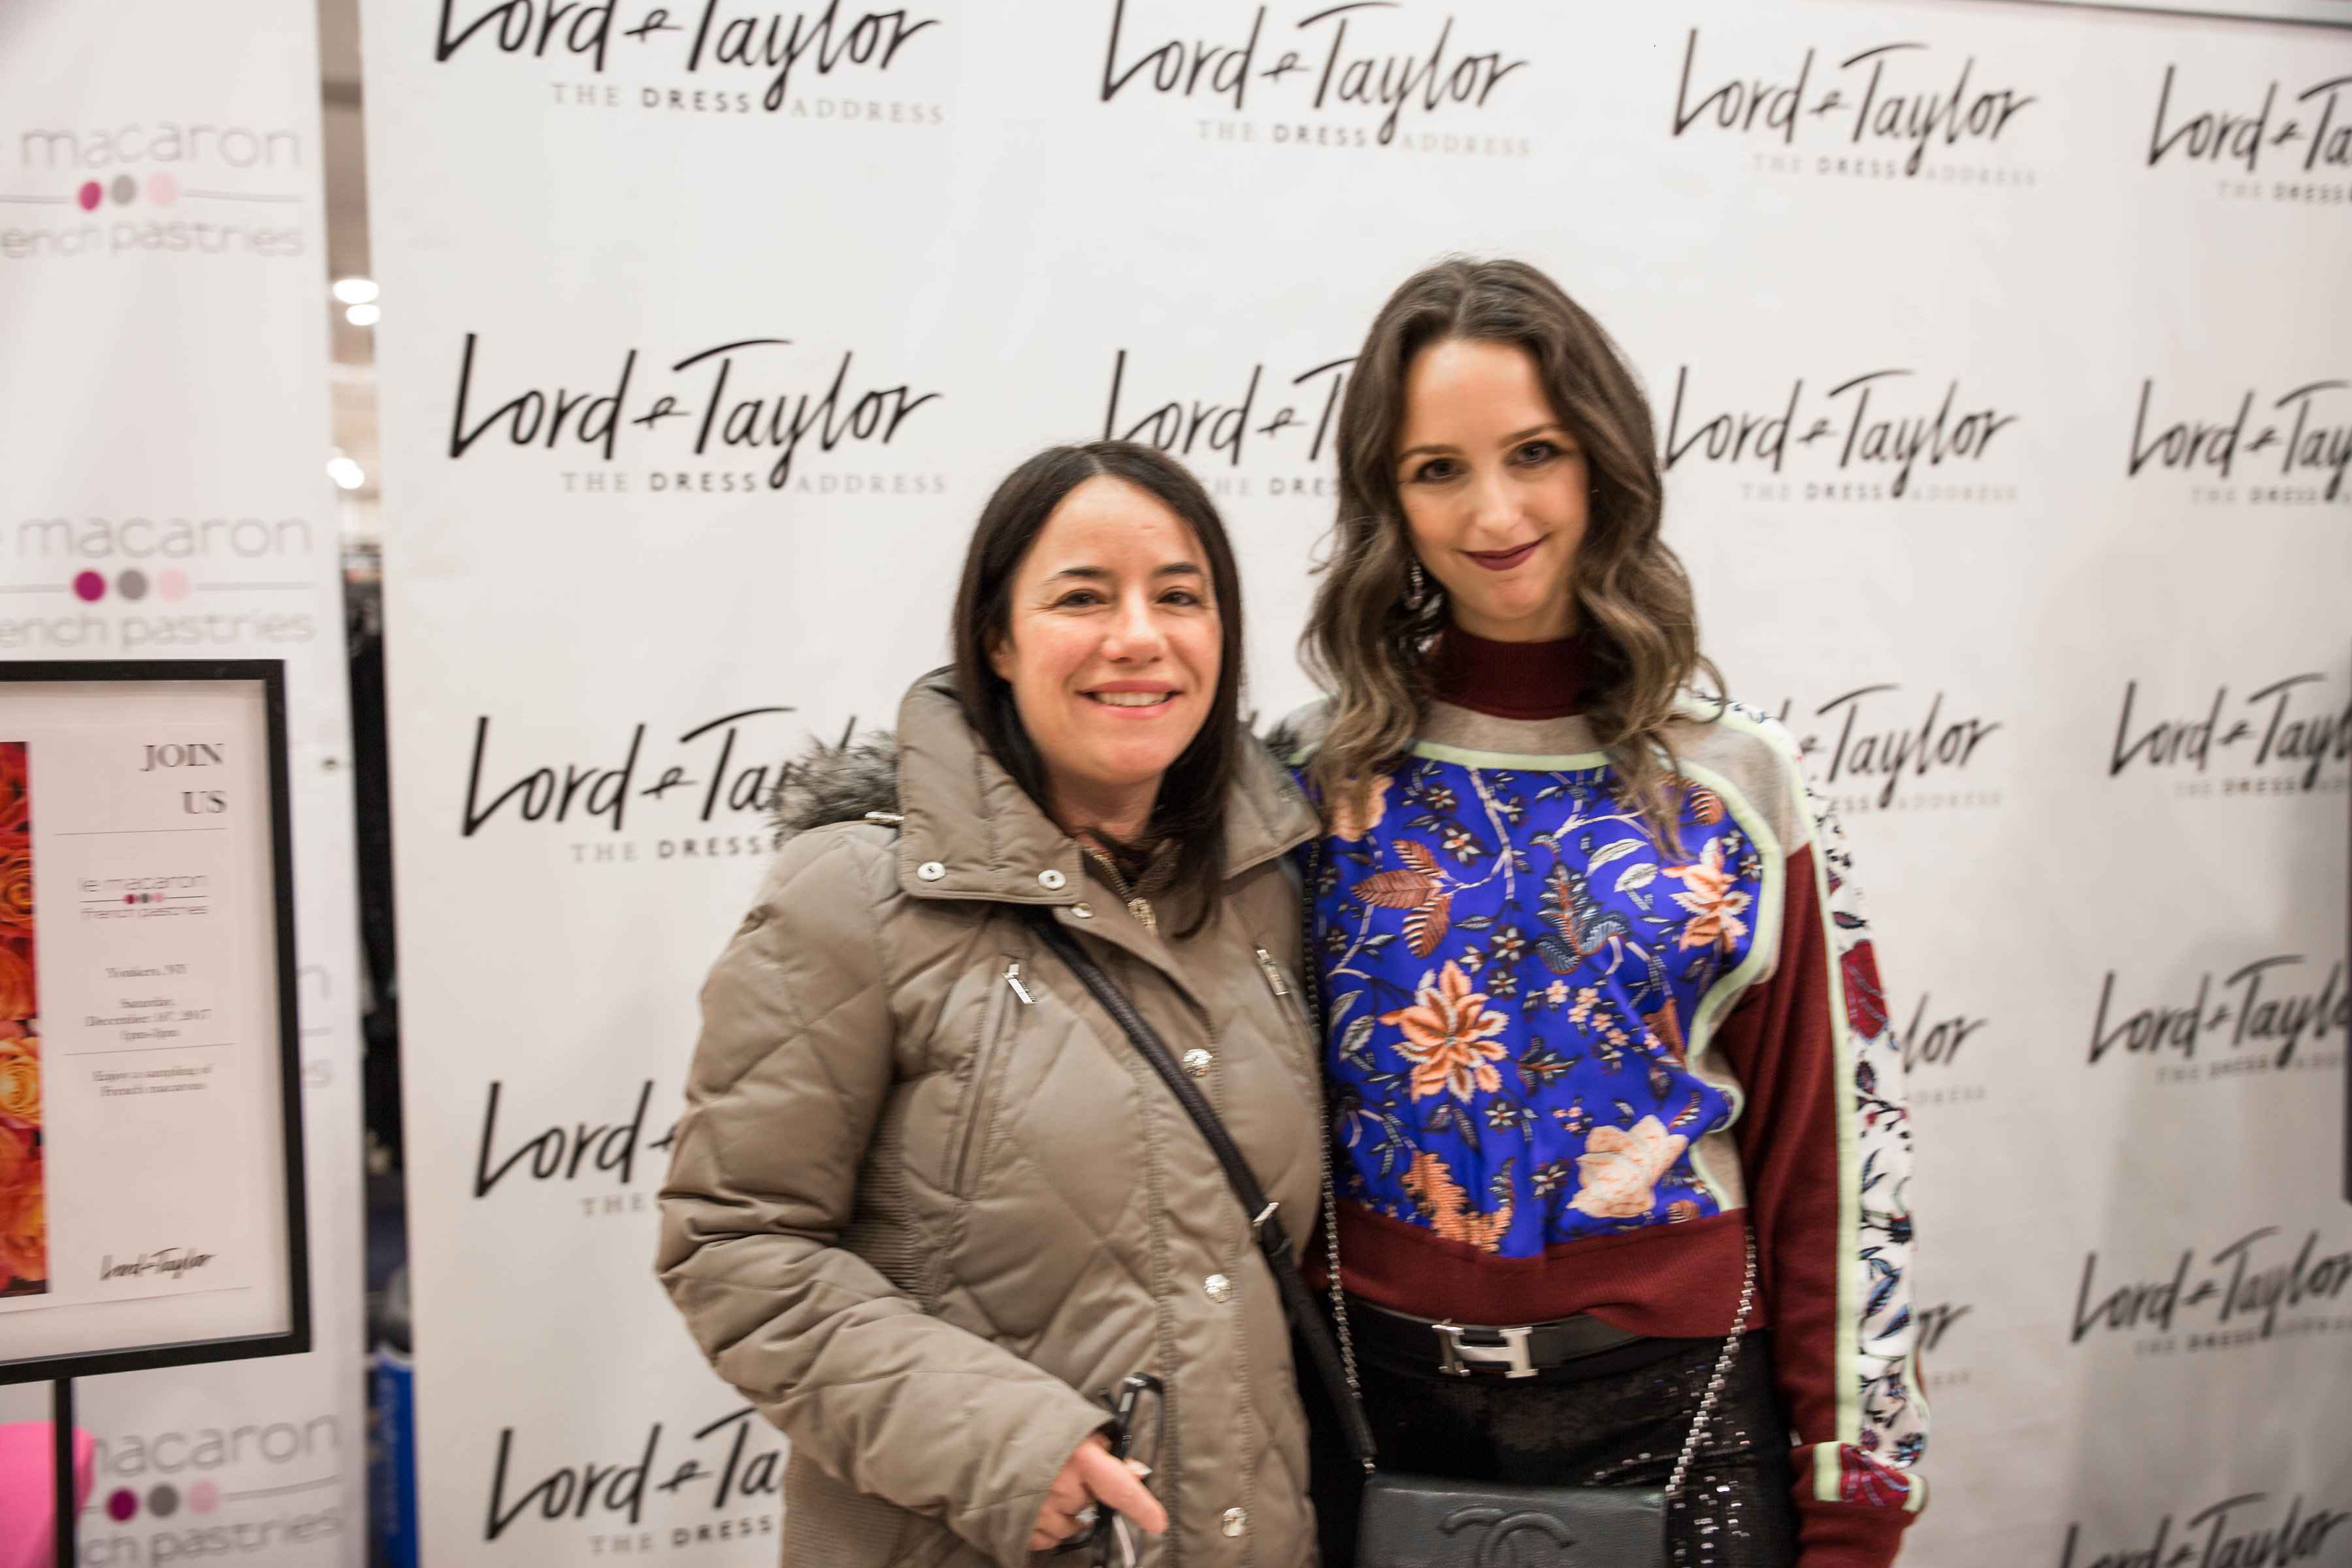 lord & taylor-simply by simone-event-westchester-ny-blogger-style-dvf-hermes-chanel-meet and greet-bauble bar